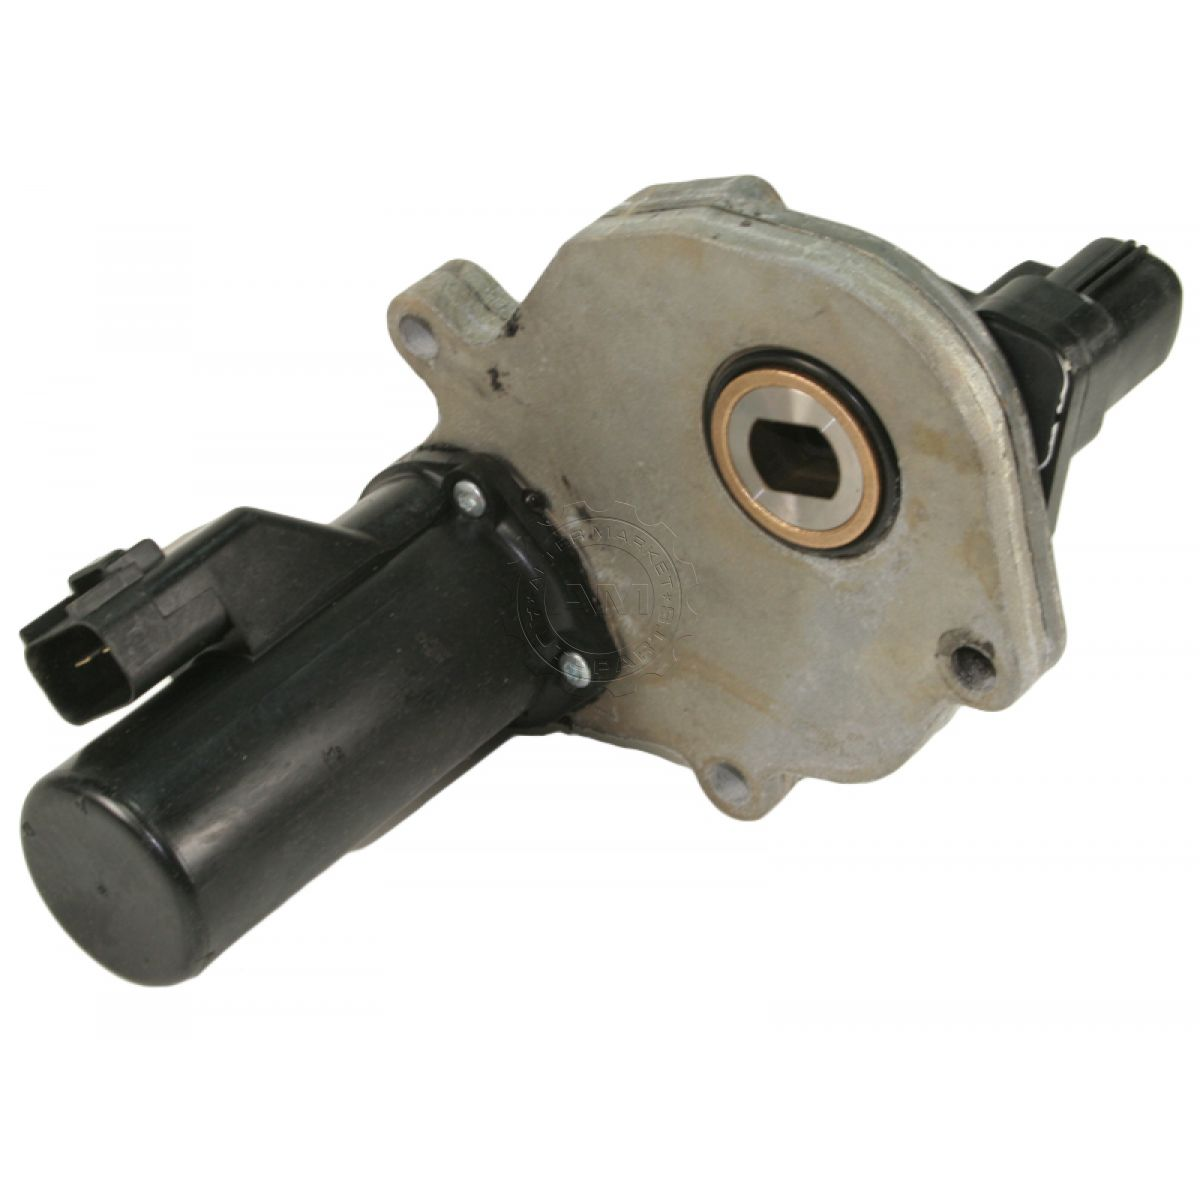 hight resolution of dorman transfer case shift motor actuator for ford f series super duty excursion